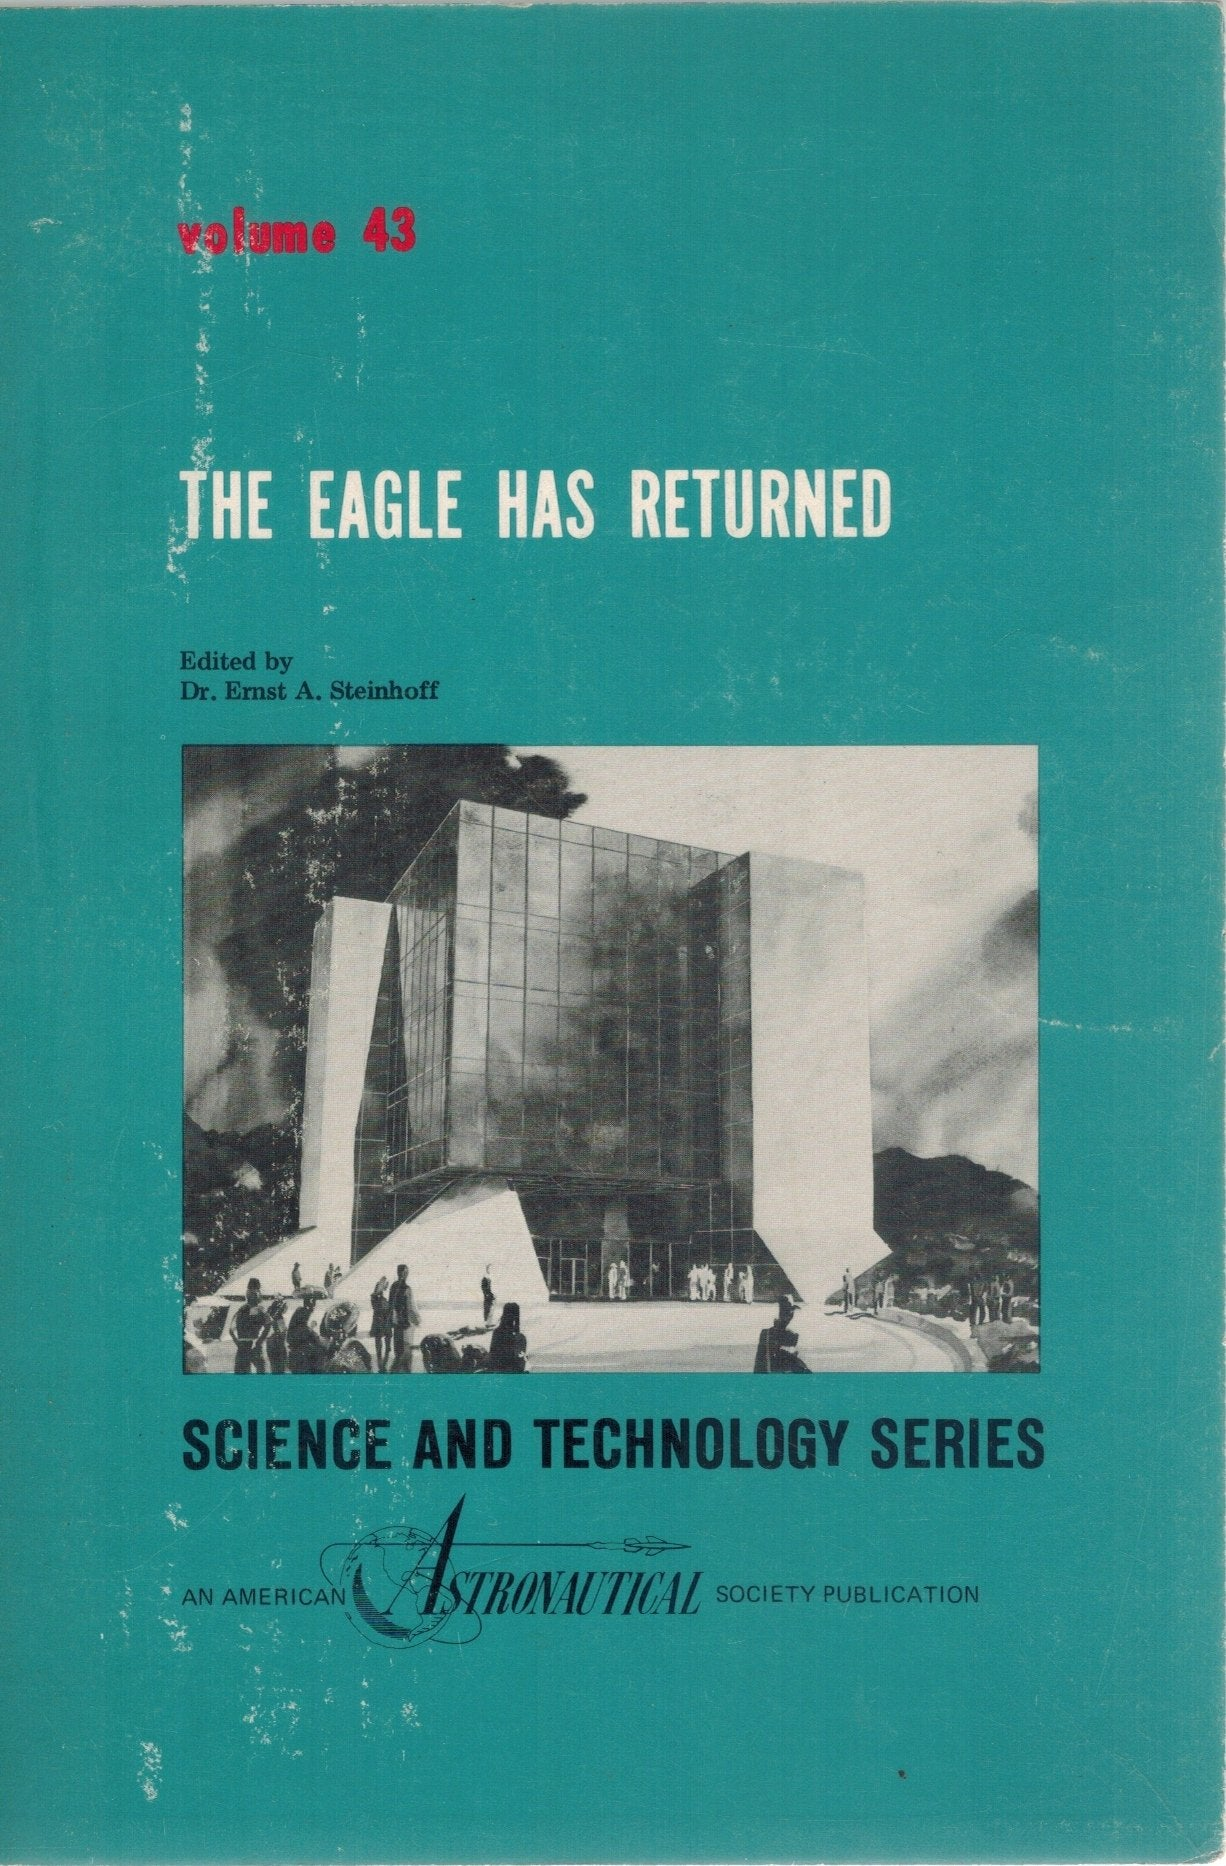 THE EAGLE HAS RETURNED International Space Hall of Fame Dedication  Conference, Oct. 5-9, 1976, Alamogordo, Nm  by Steinhoff, Ernst A.